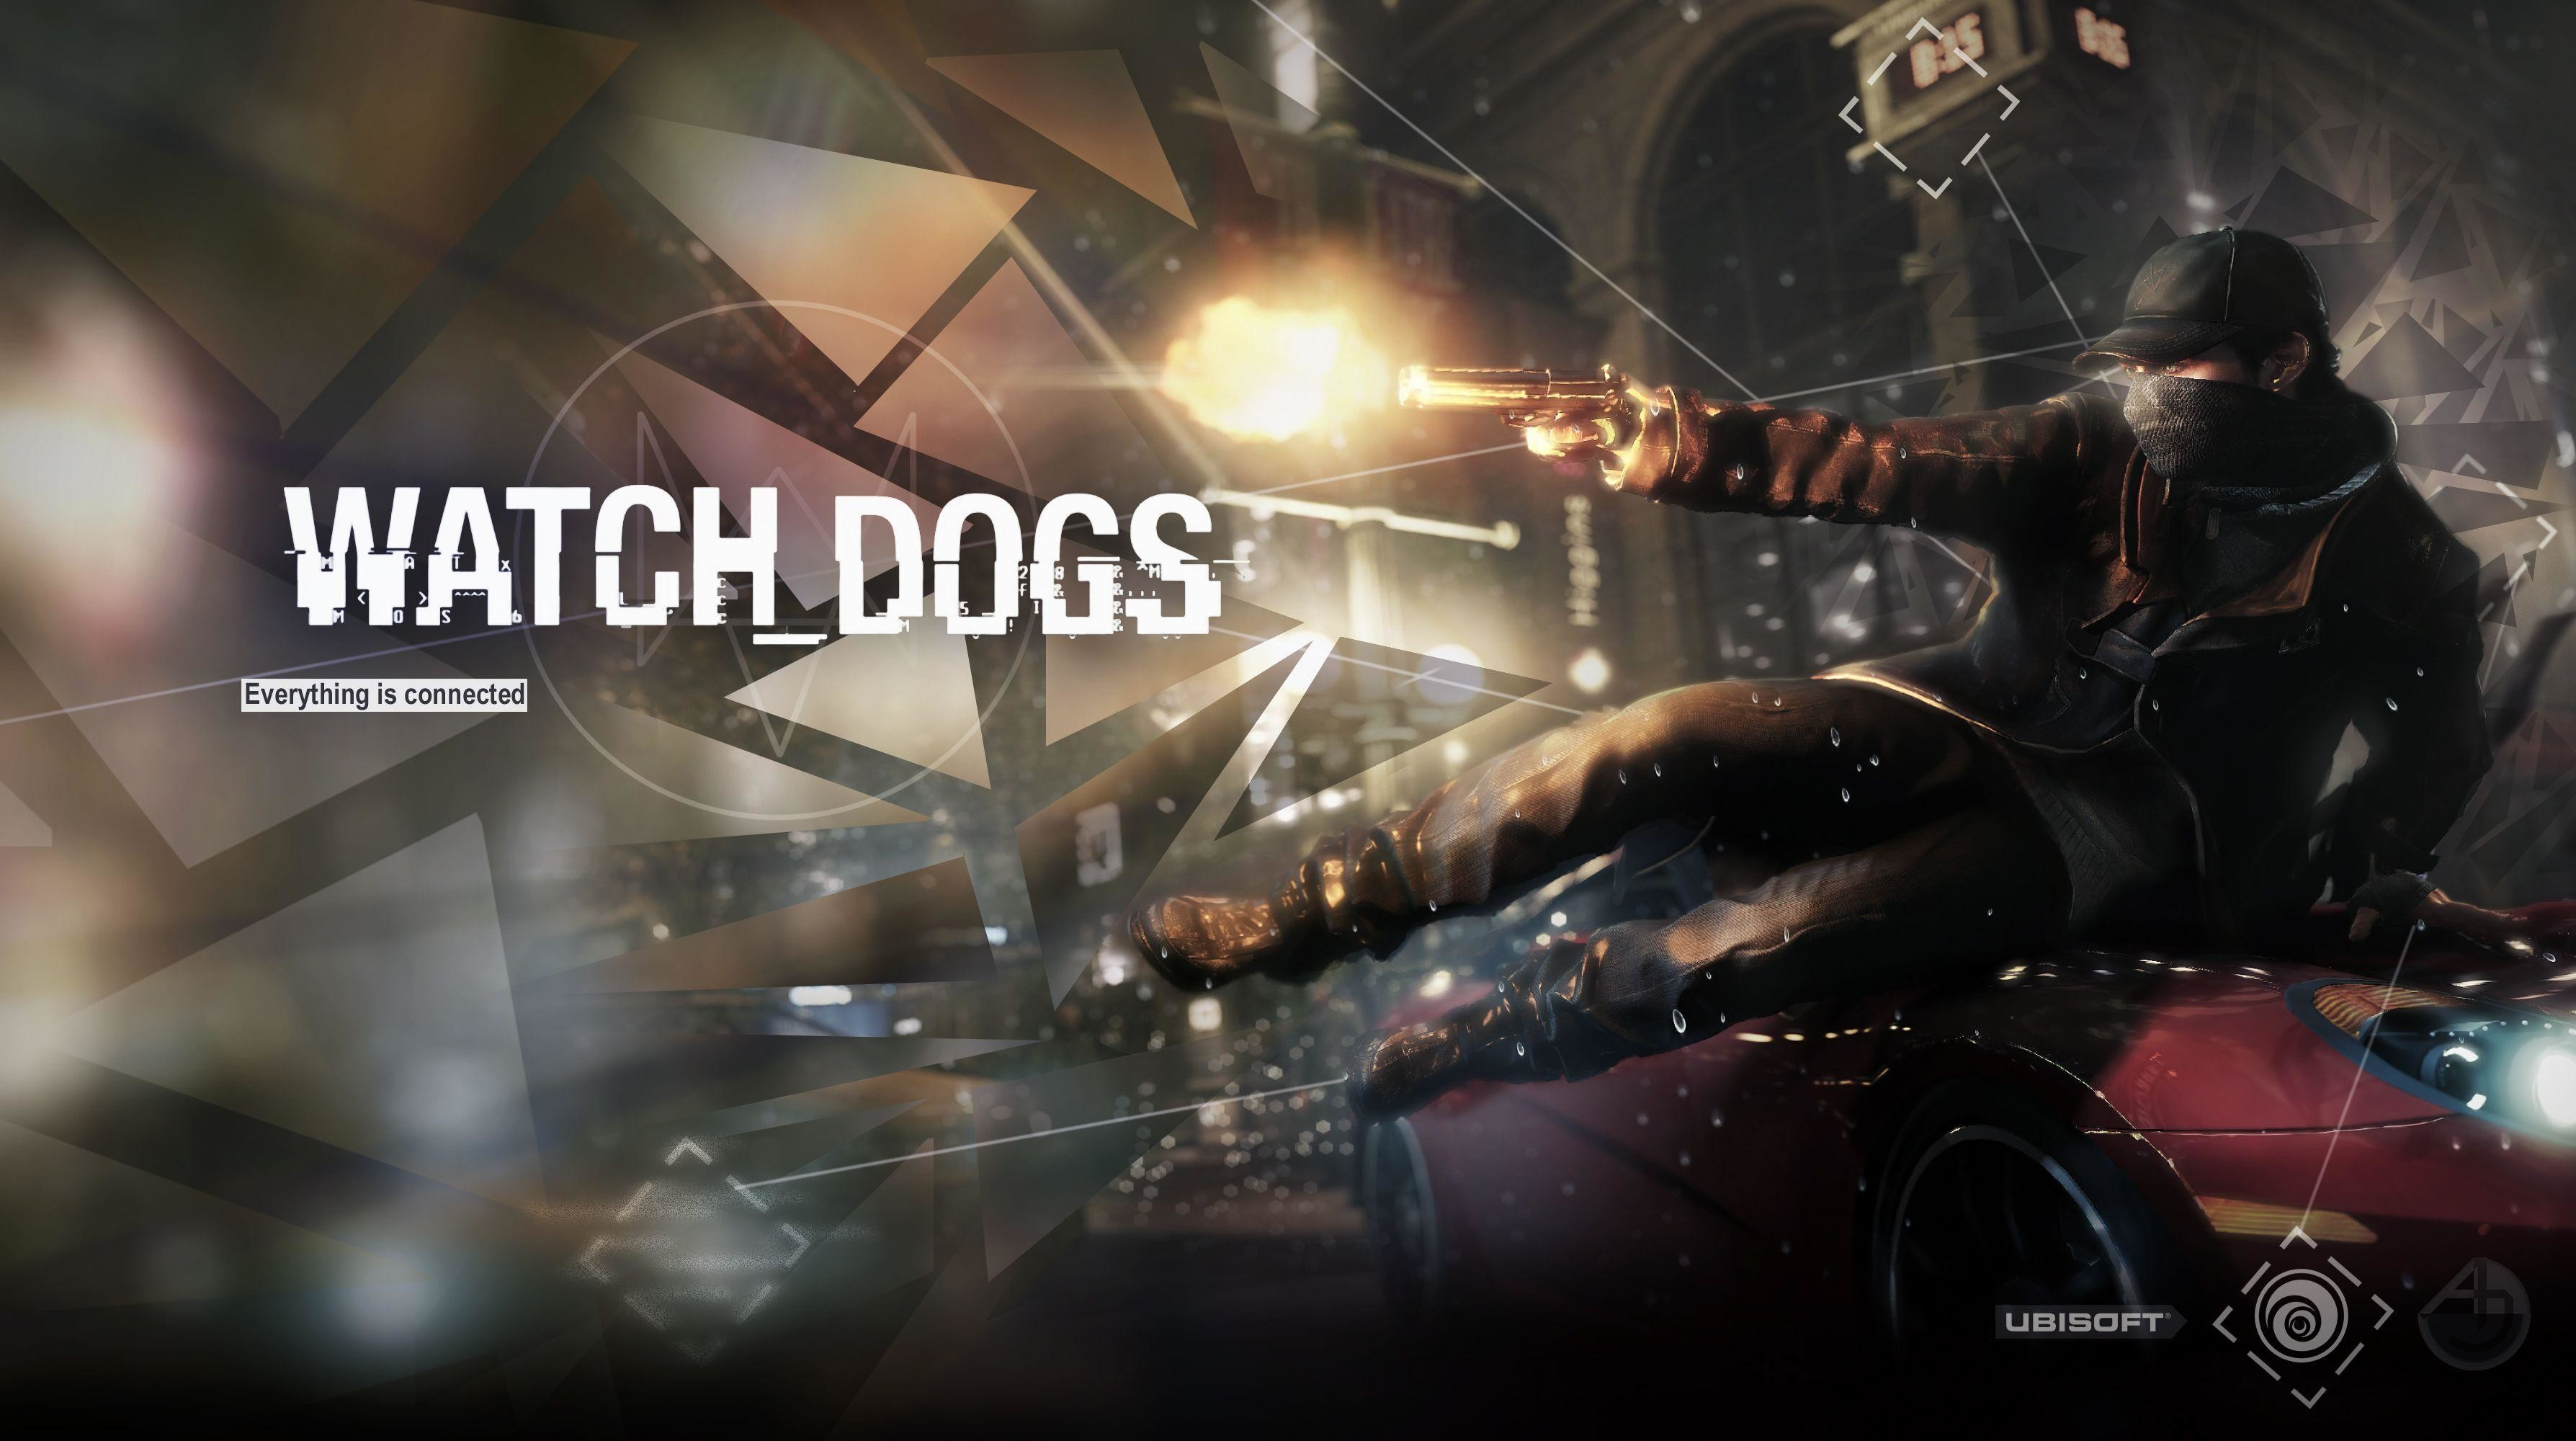 3576x2000 Watch Dogs Wallpapers